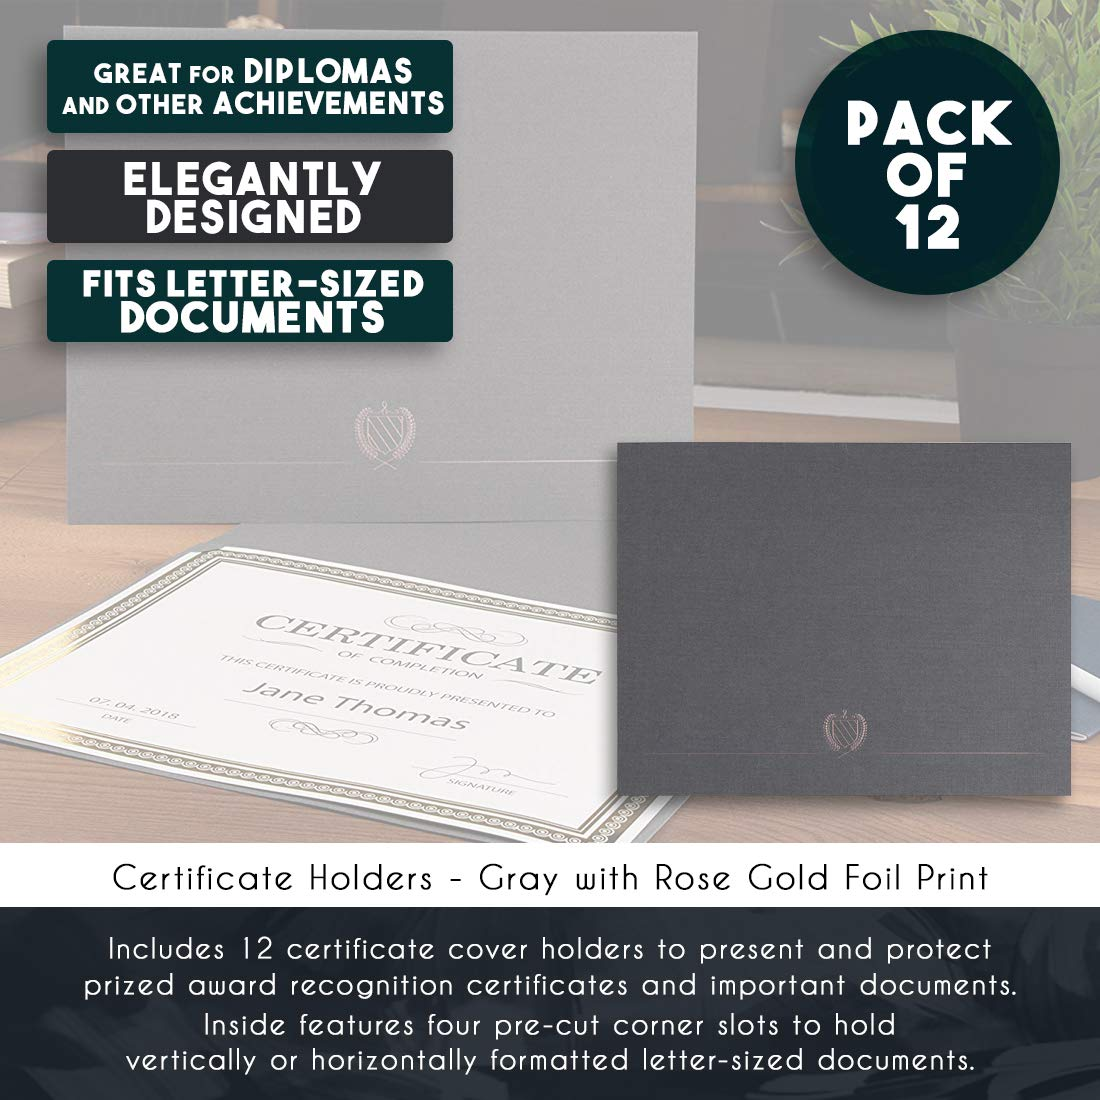 300 GSM 12-Pack Diploma Cover Gray Document Cover for Letter-Sized Award Certificates 11.2 x 8.8 Inches Rose Gold Foil Print Certificate Holder